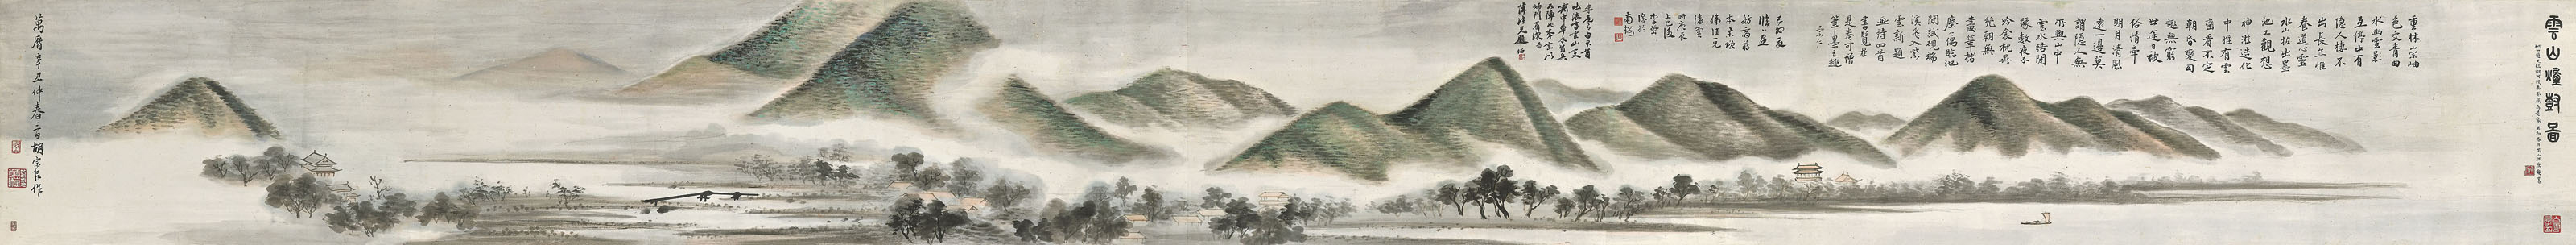 Landscape in Mist and Cloud